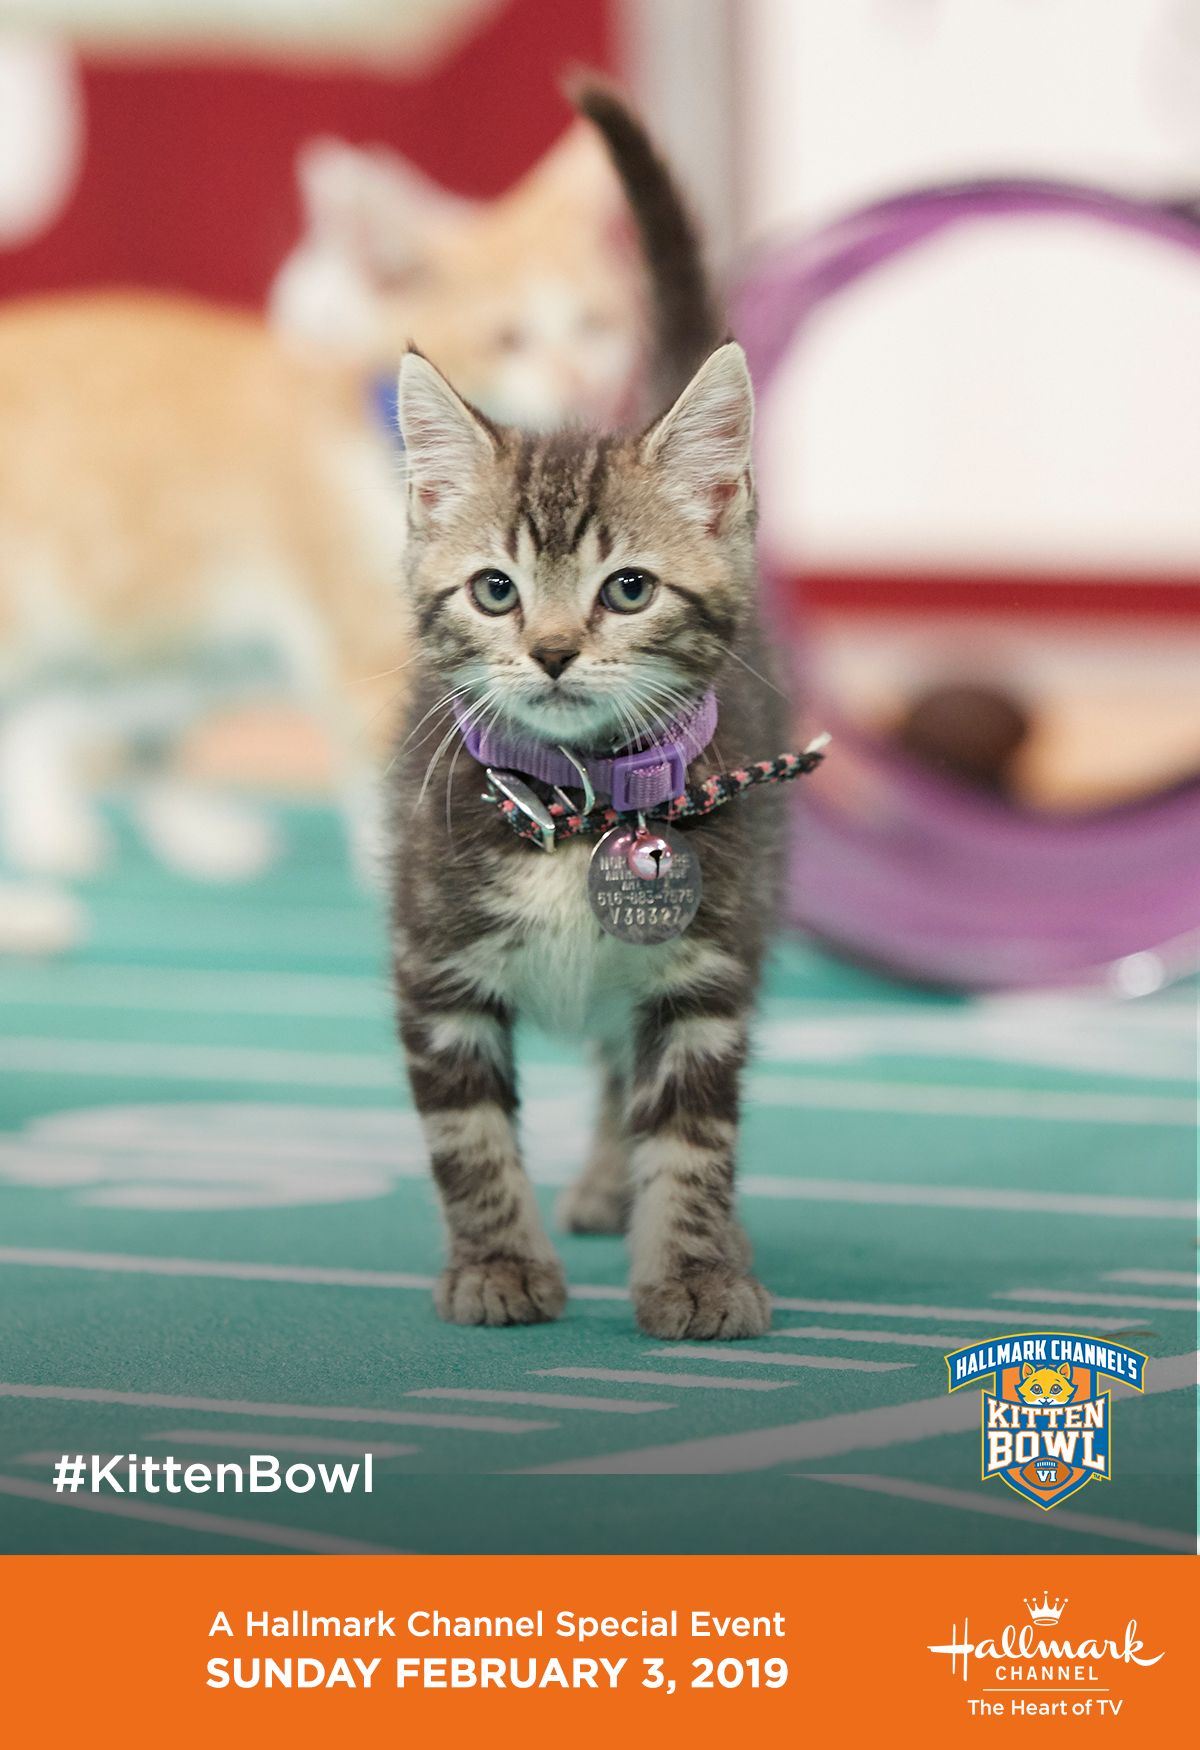 The North Shore Bengals Are Ready For Kitten Bowl Vi Catch The Action On February 3 Only On Hallmark Channel Kitten Bowls Hallmark Channel Kittens Cutest